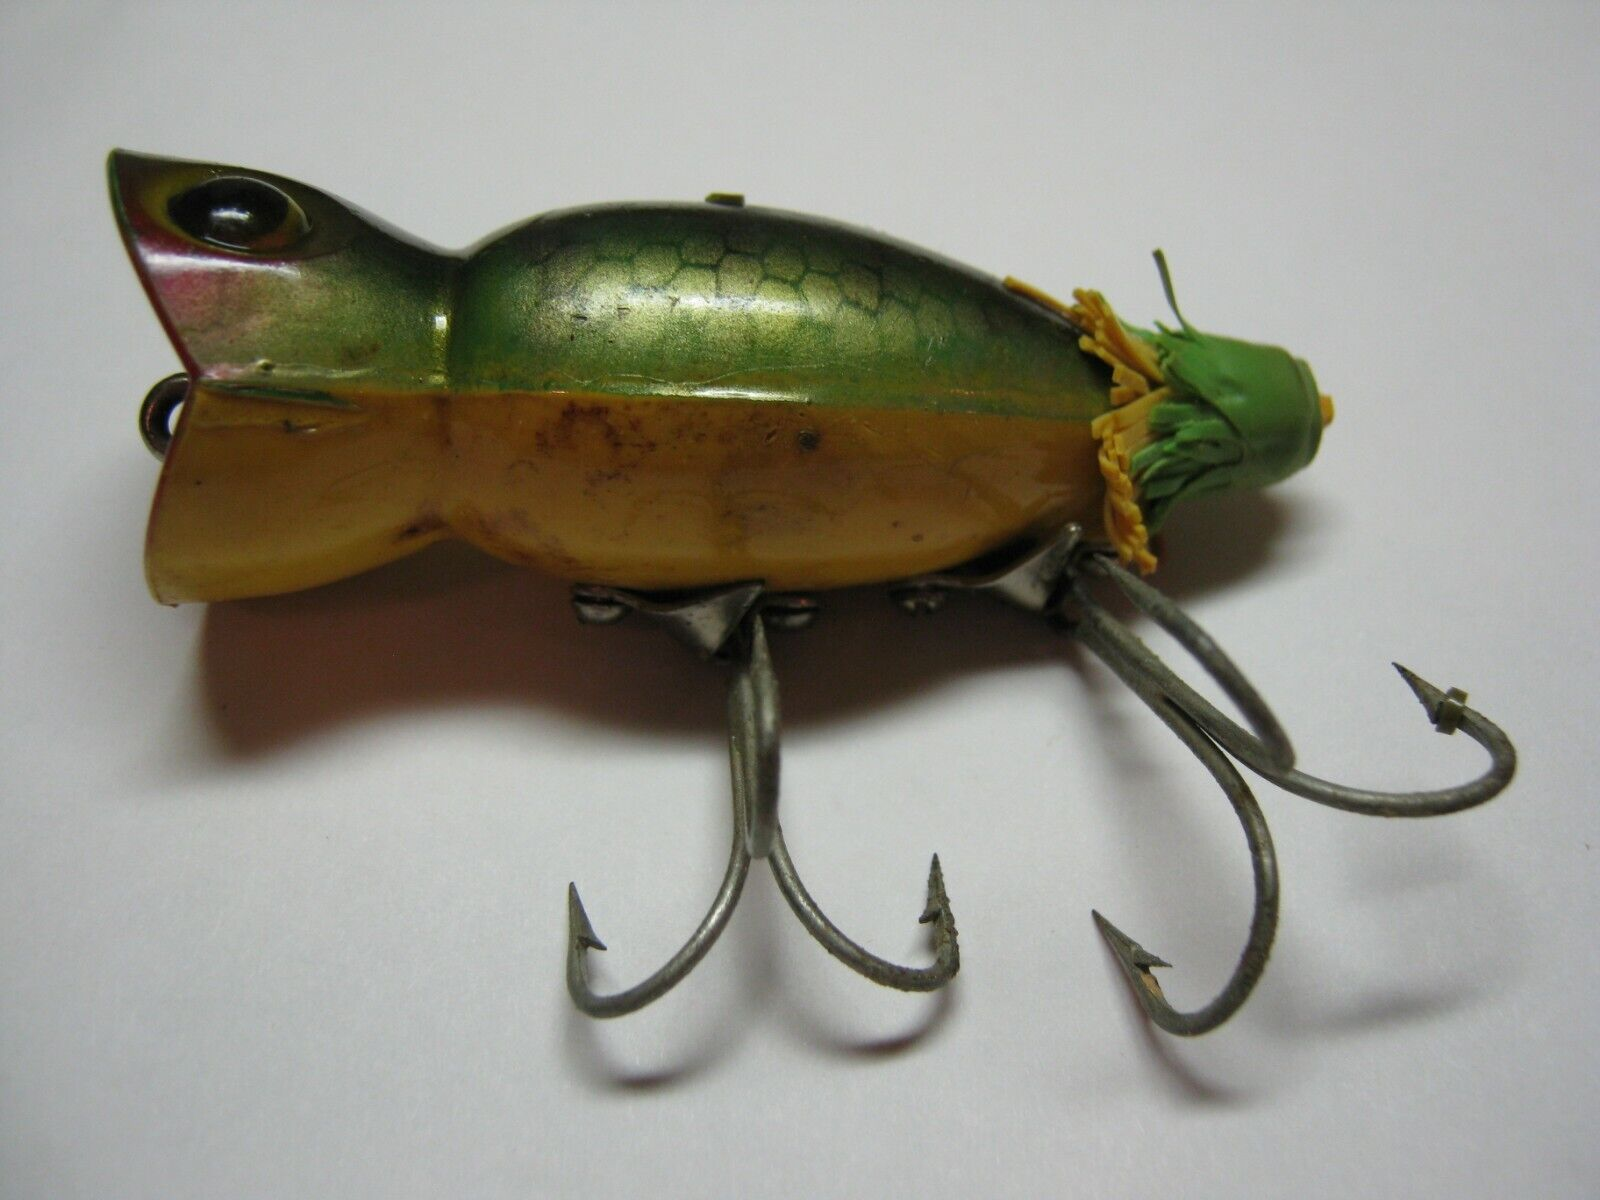 VINTAGE HULA POPPER FISHING LURE IN RARE Frog like- green yellow   COLOR PATTERN